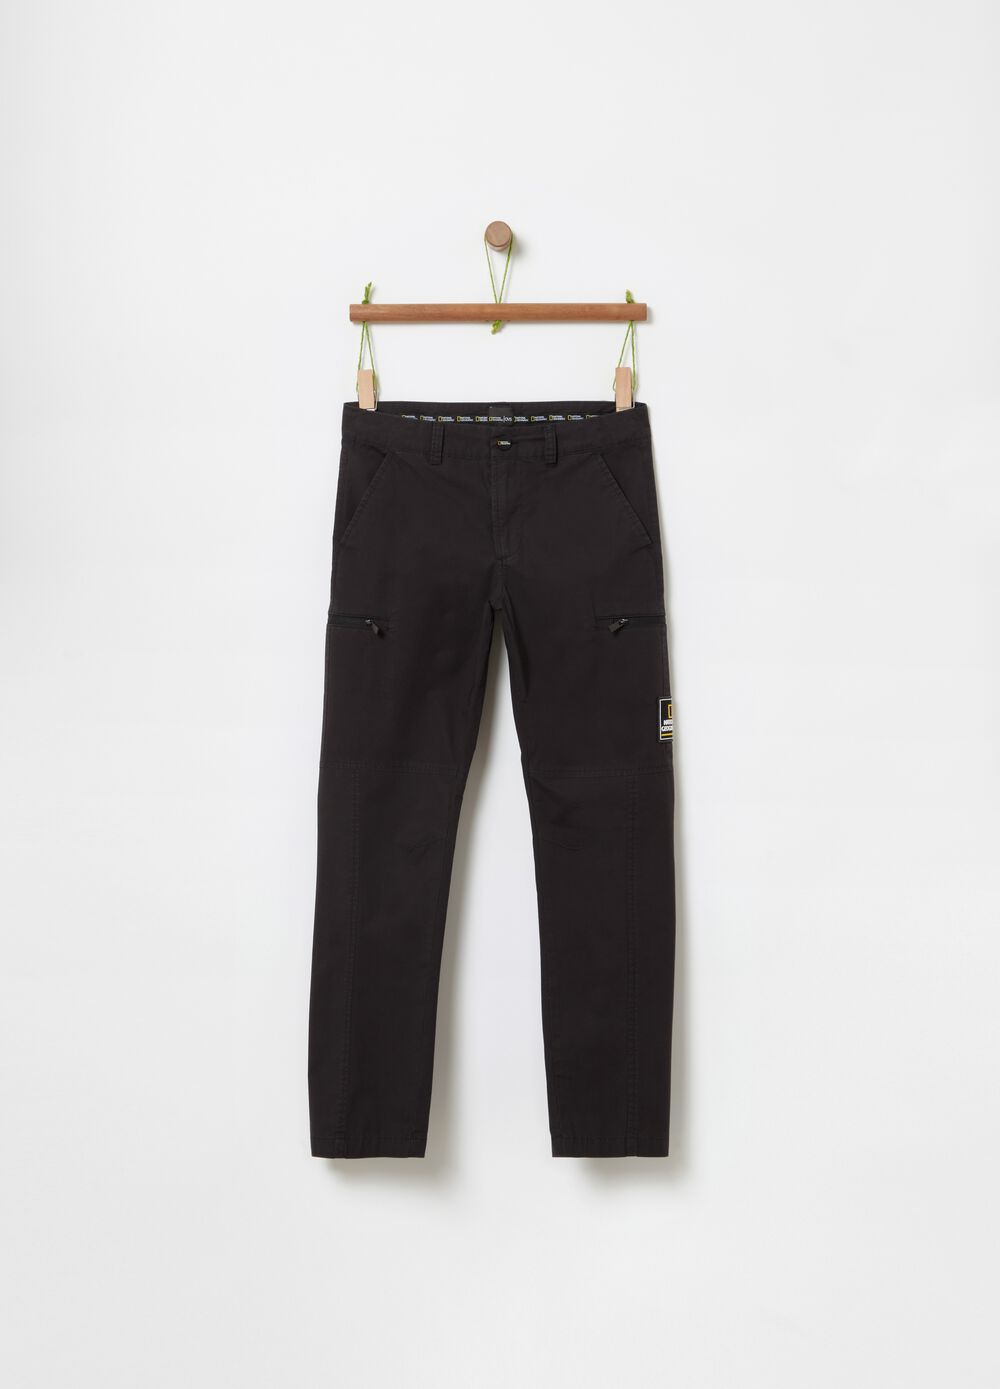 National Geographic trousers